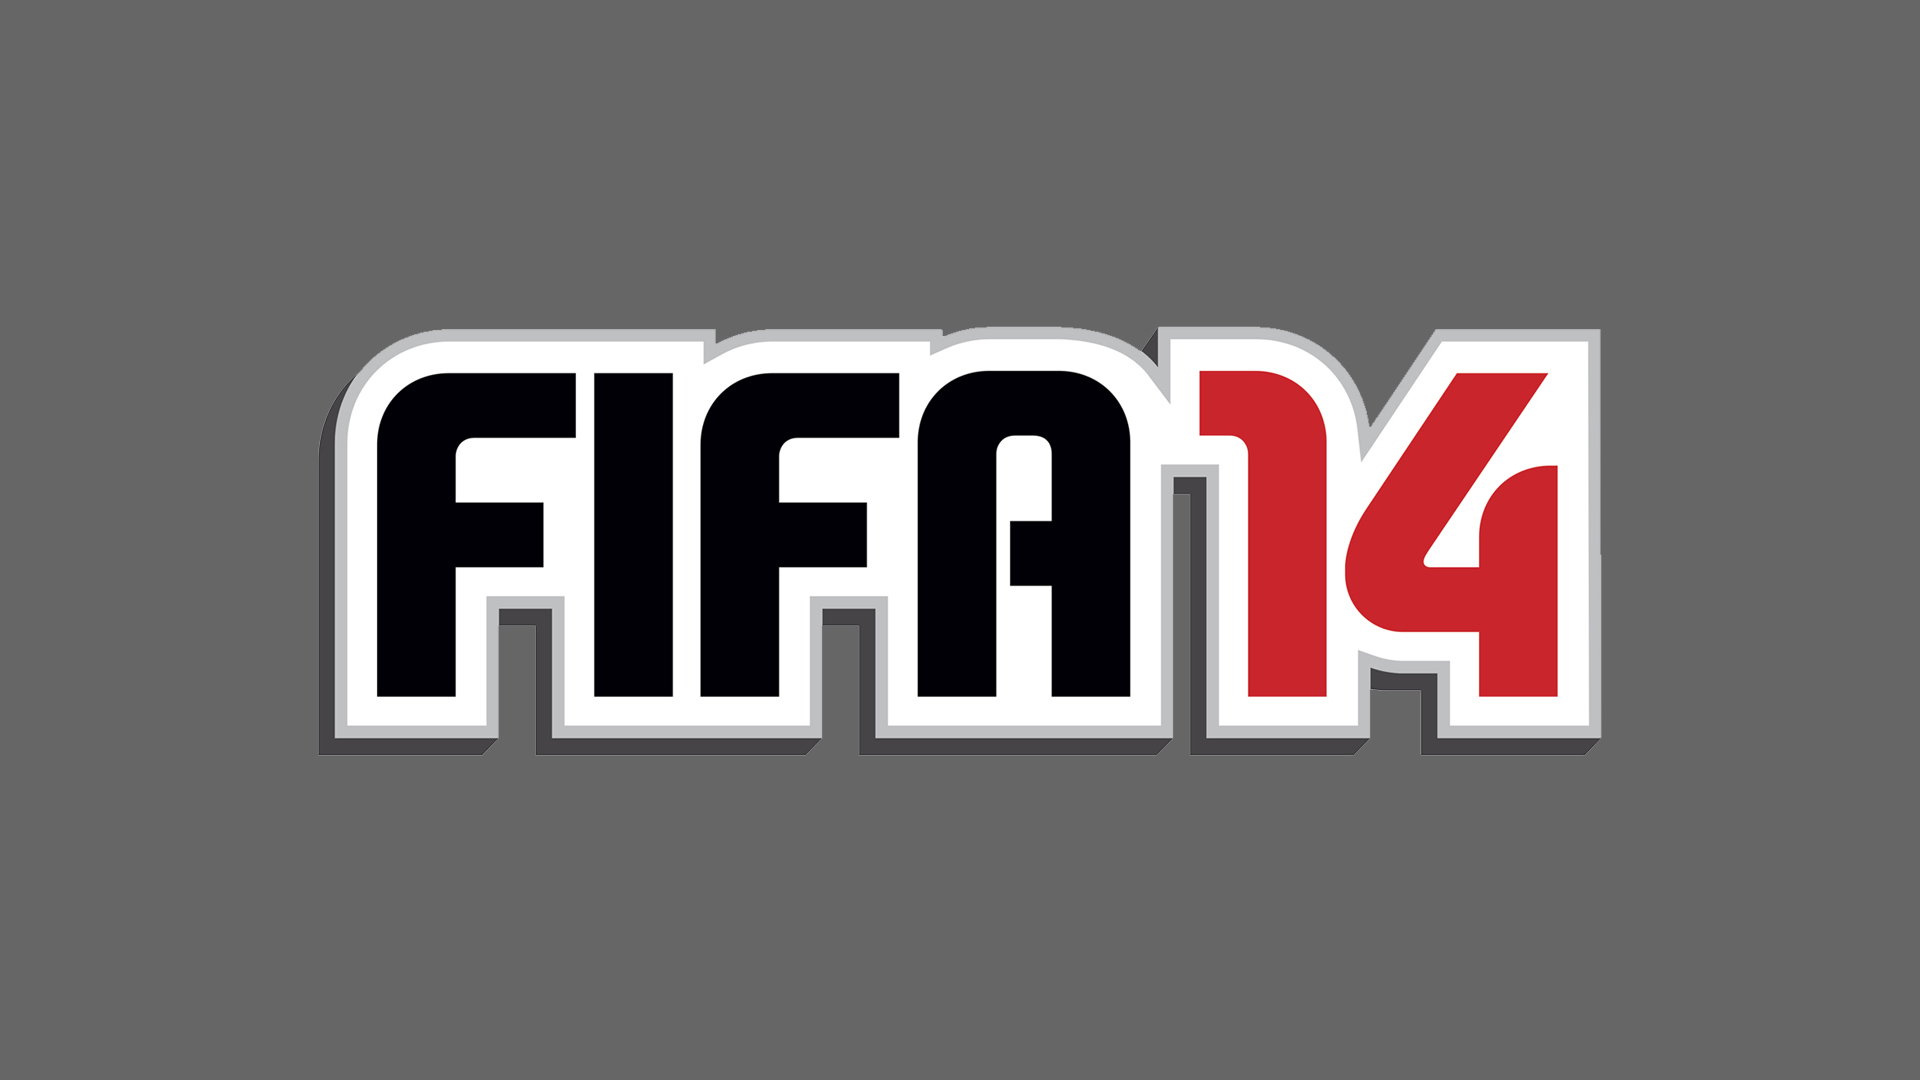 fifa 14 logo wallpaper 23788